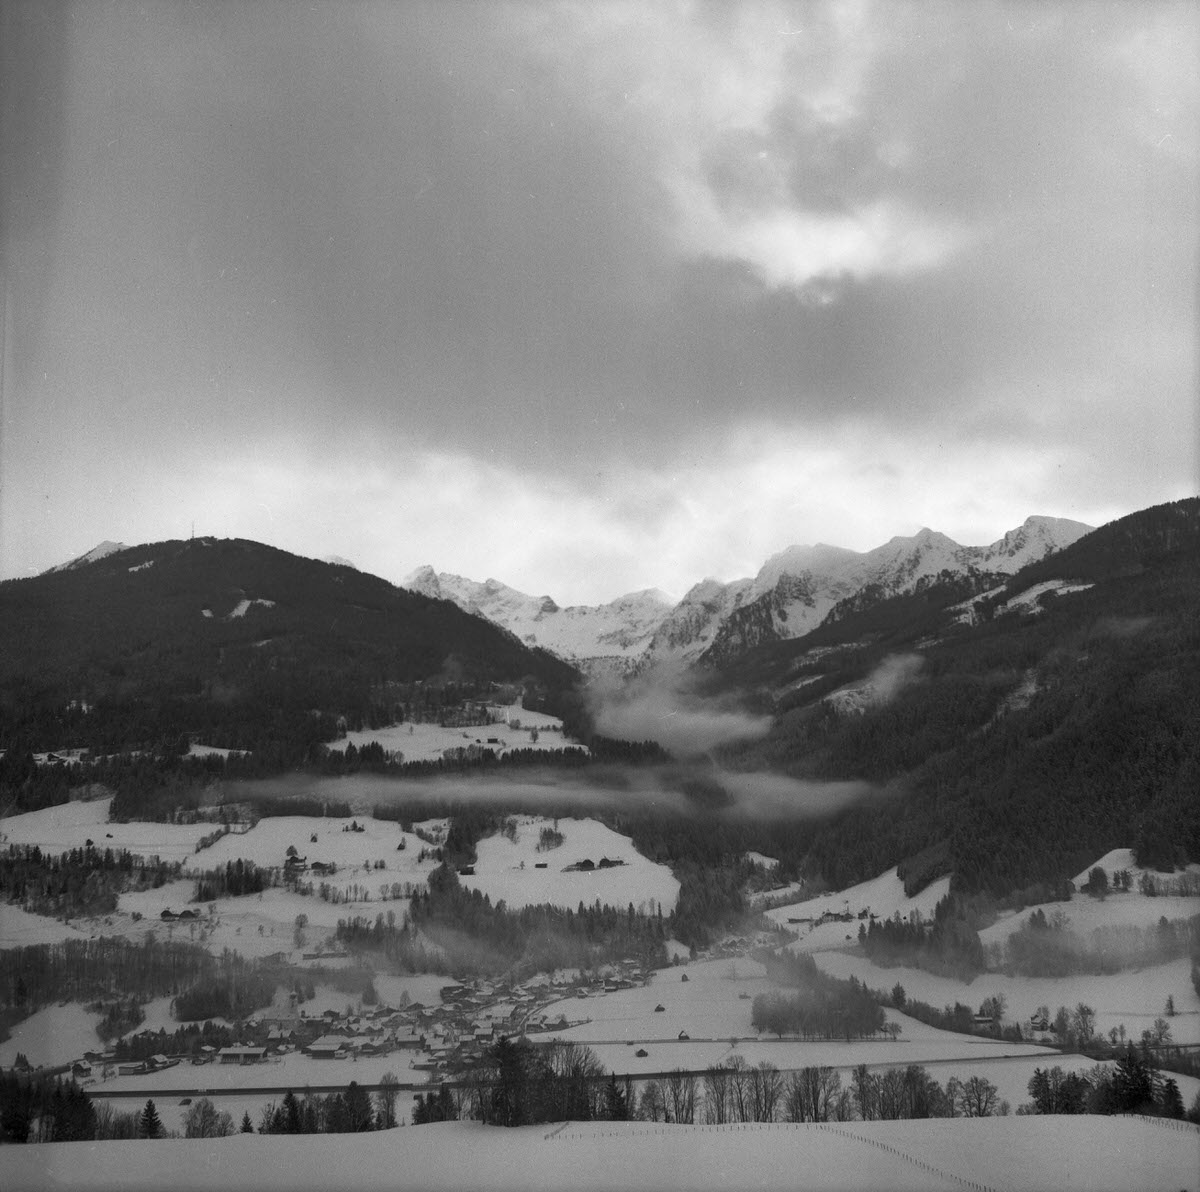 Birnbergblick - Fujilm Acros Neopan developed in Rodinal